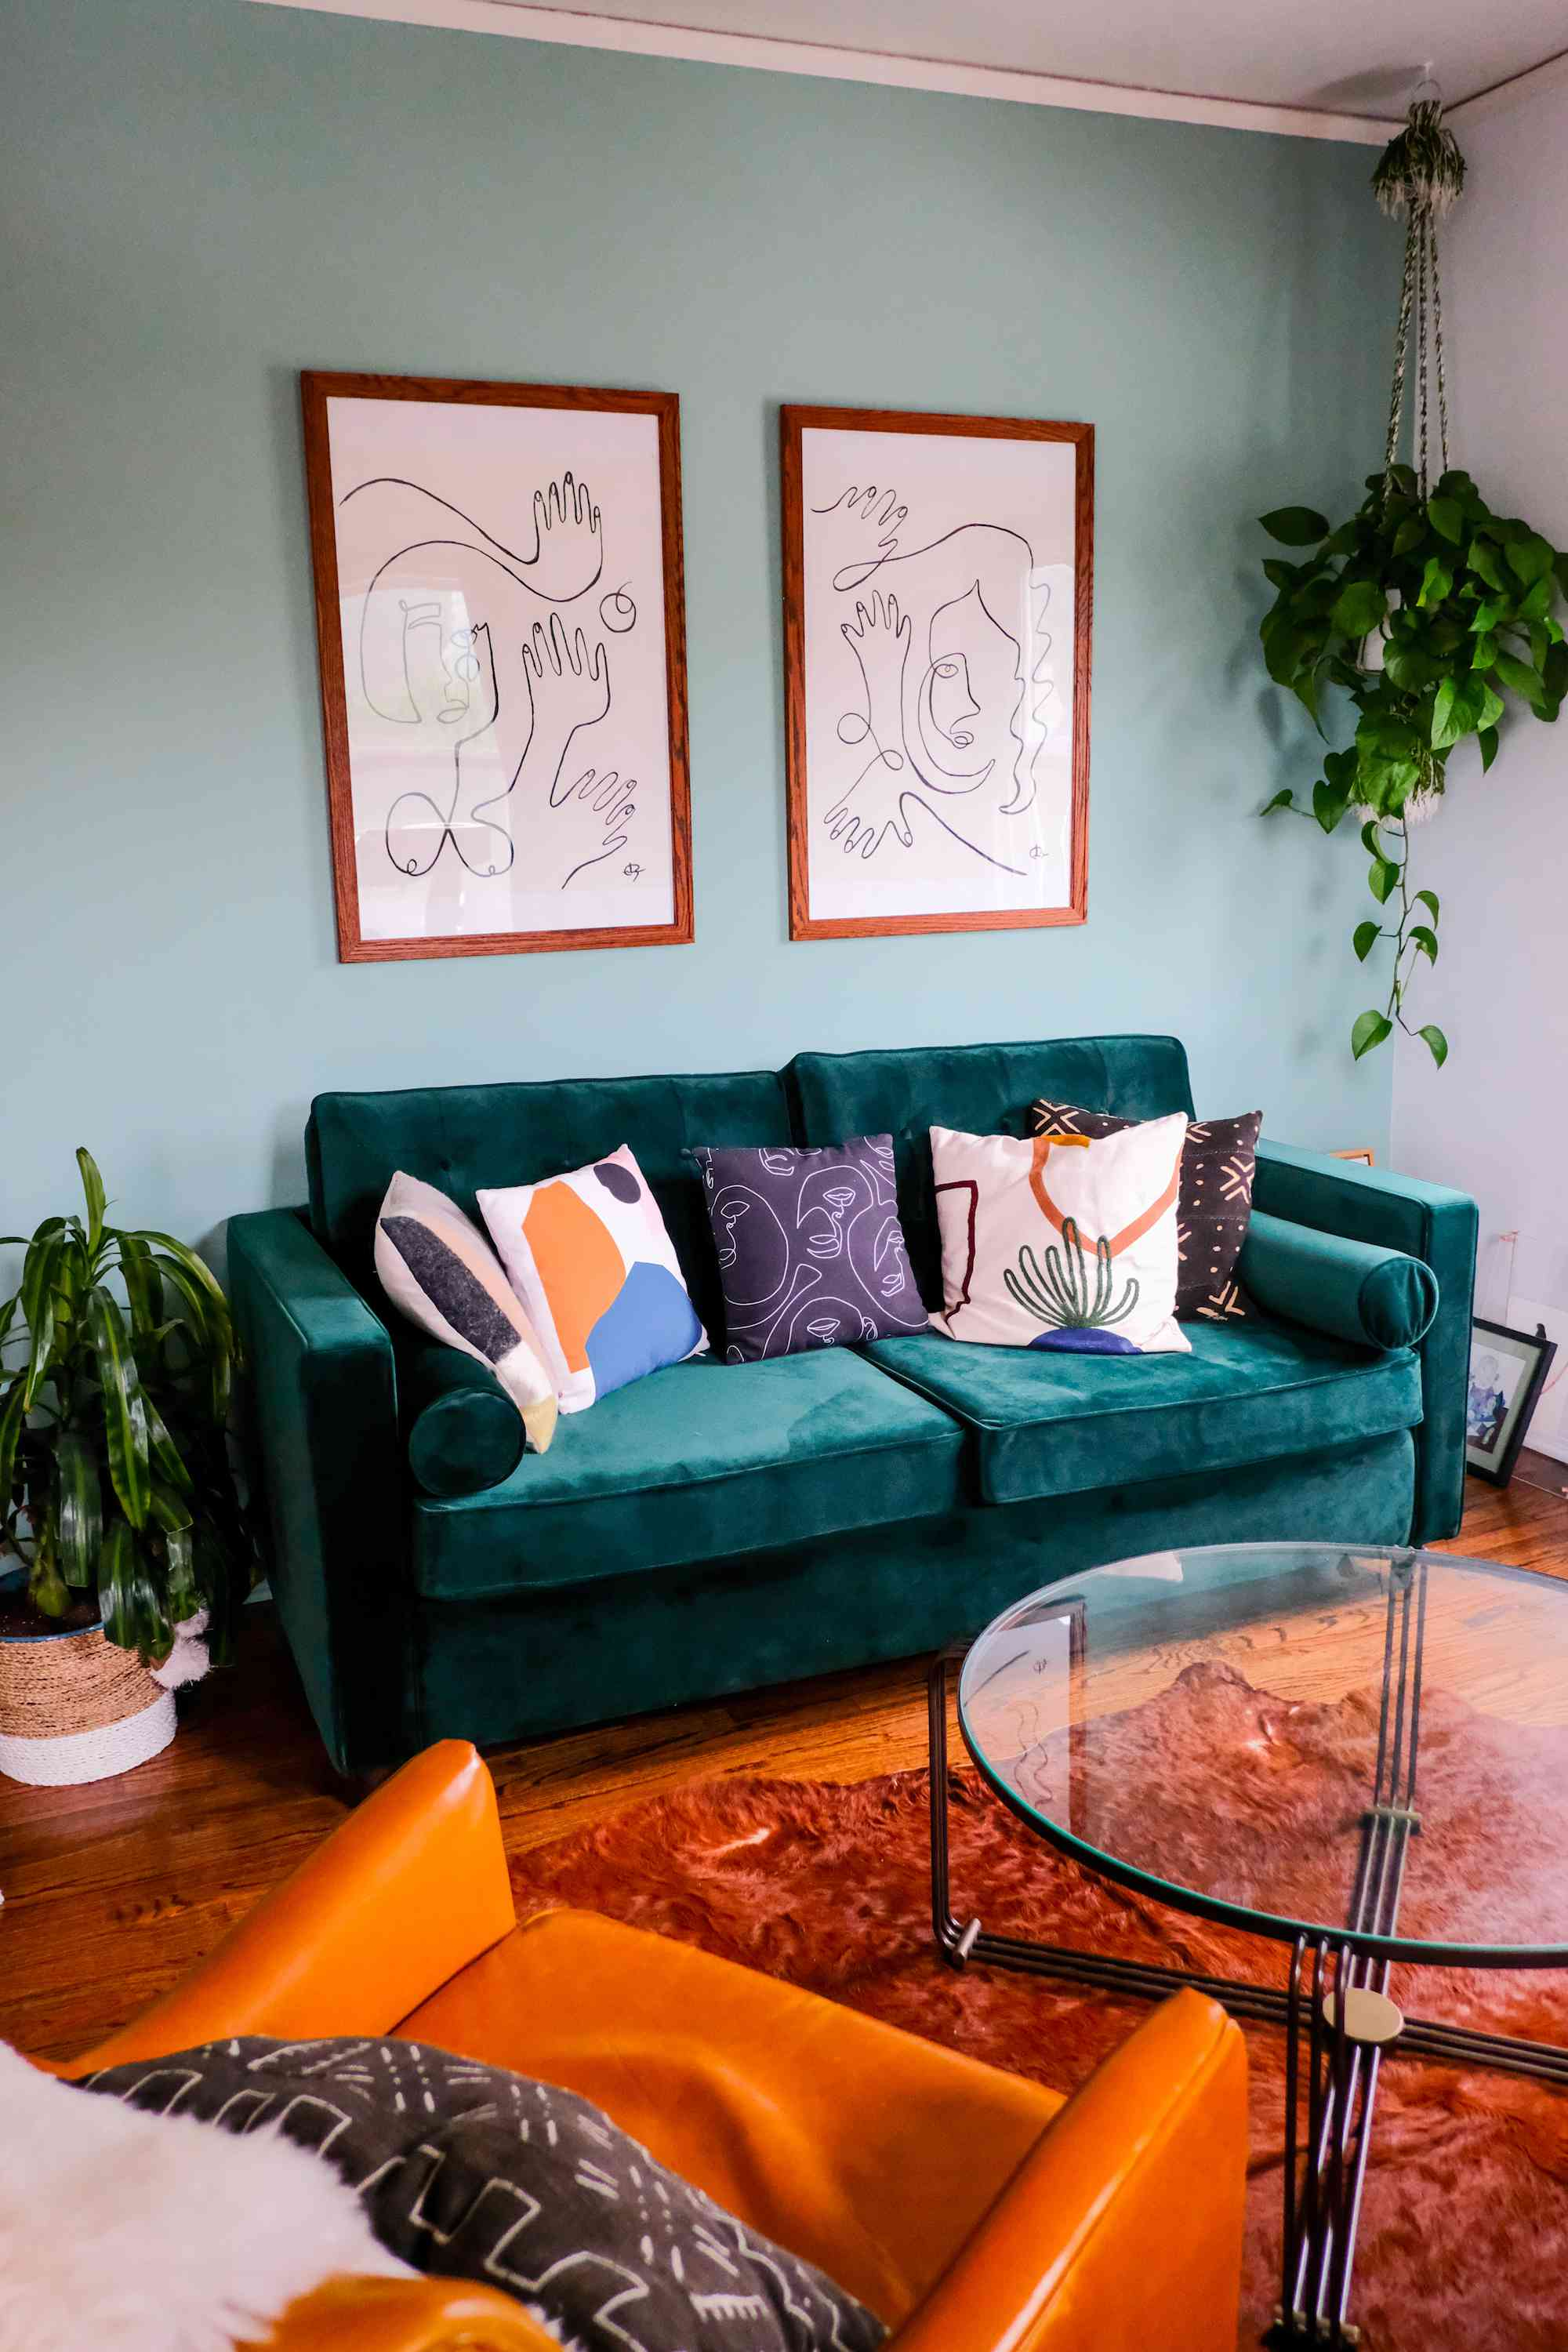 Colorful living space will teal couch.